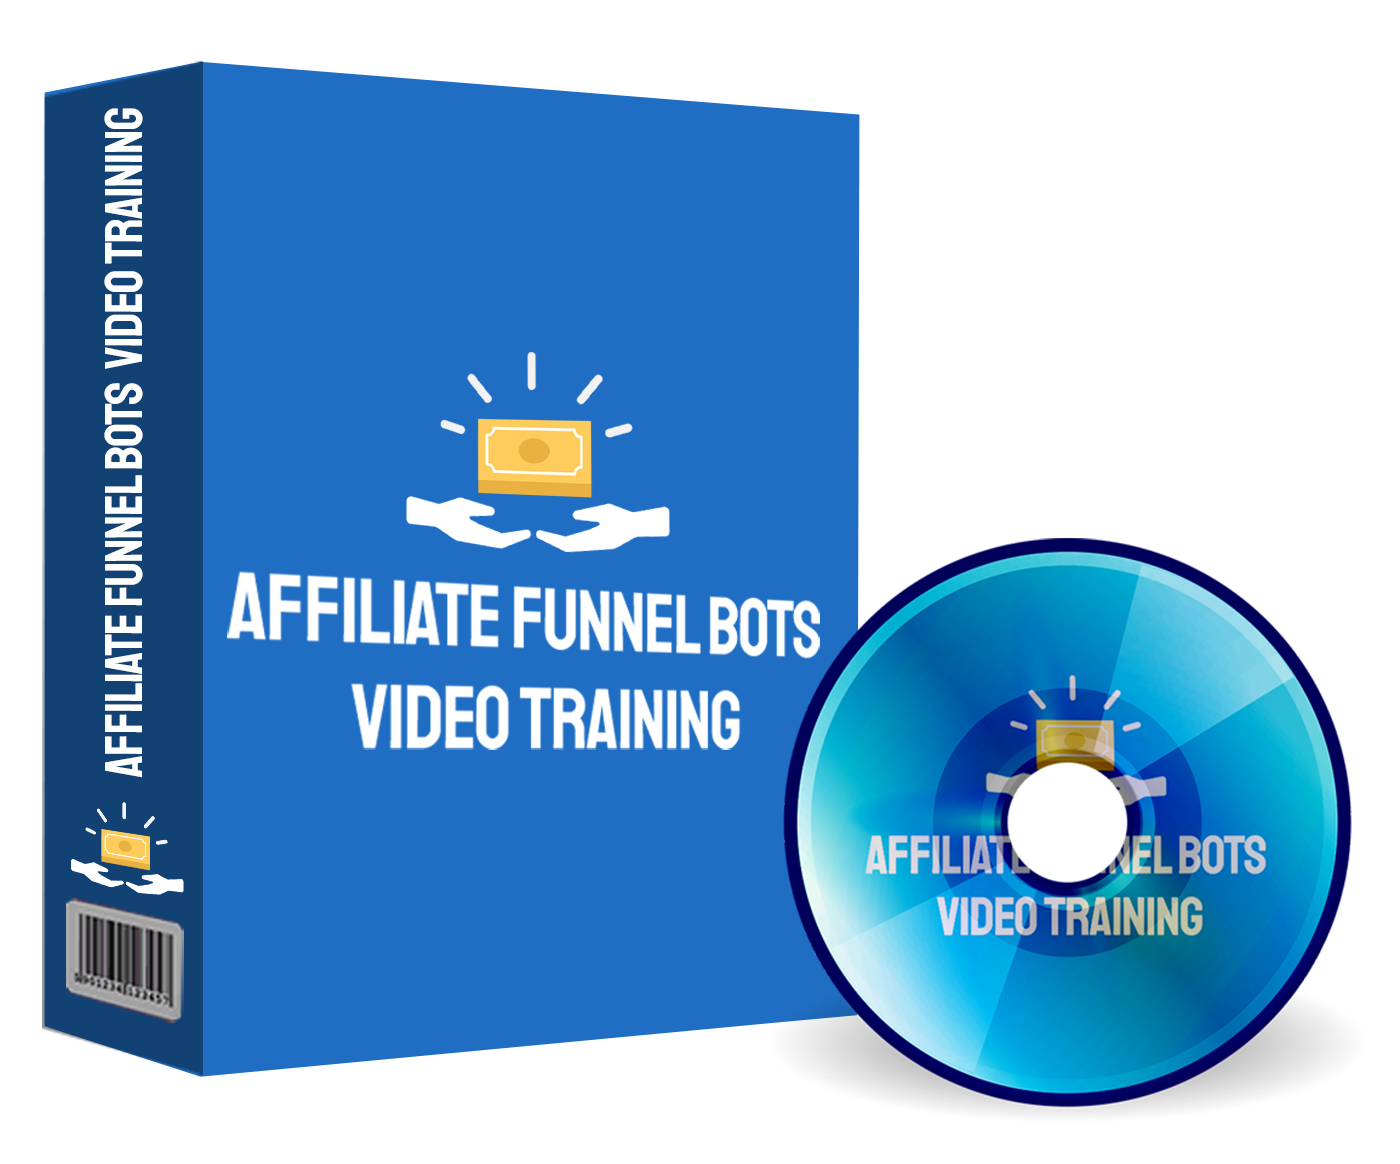 affiliate funnel bots training